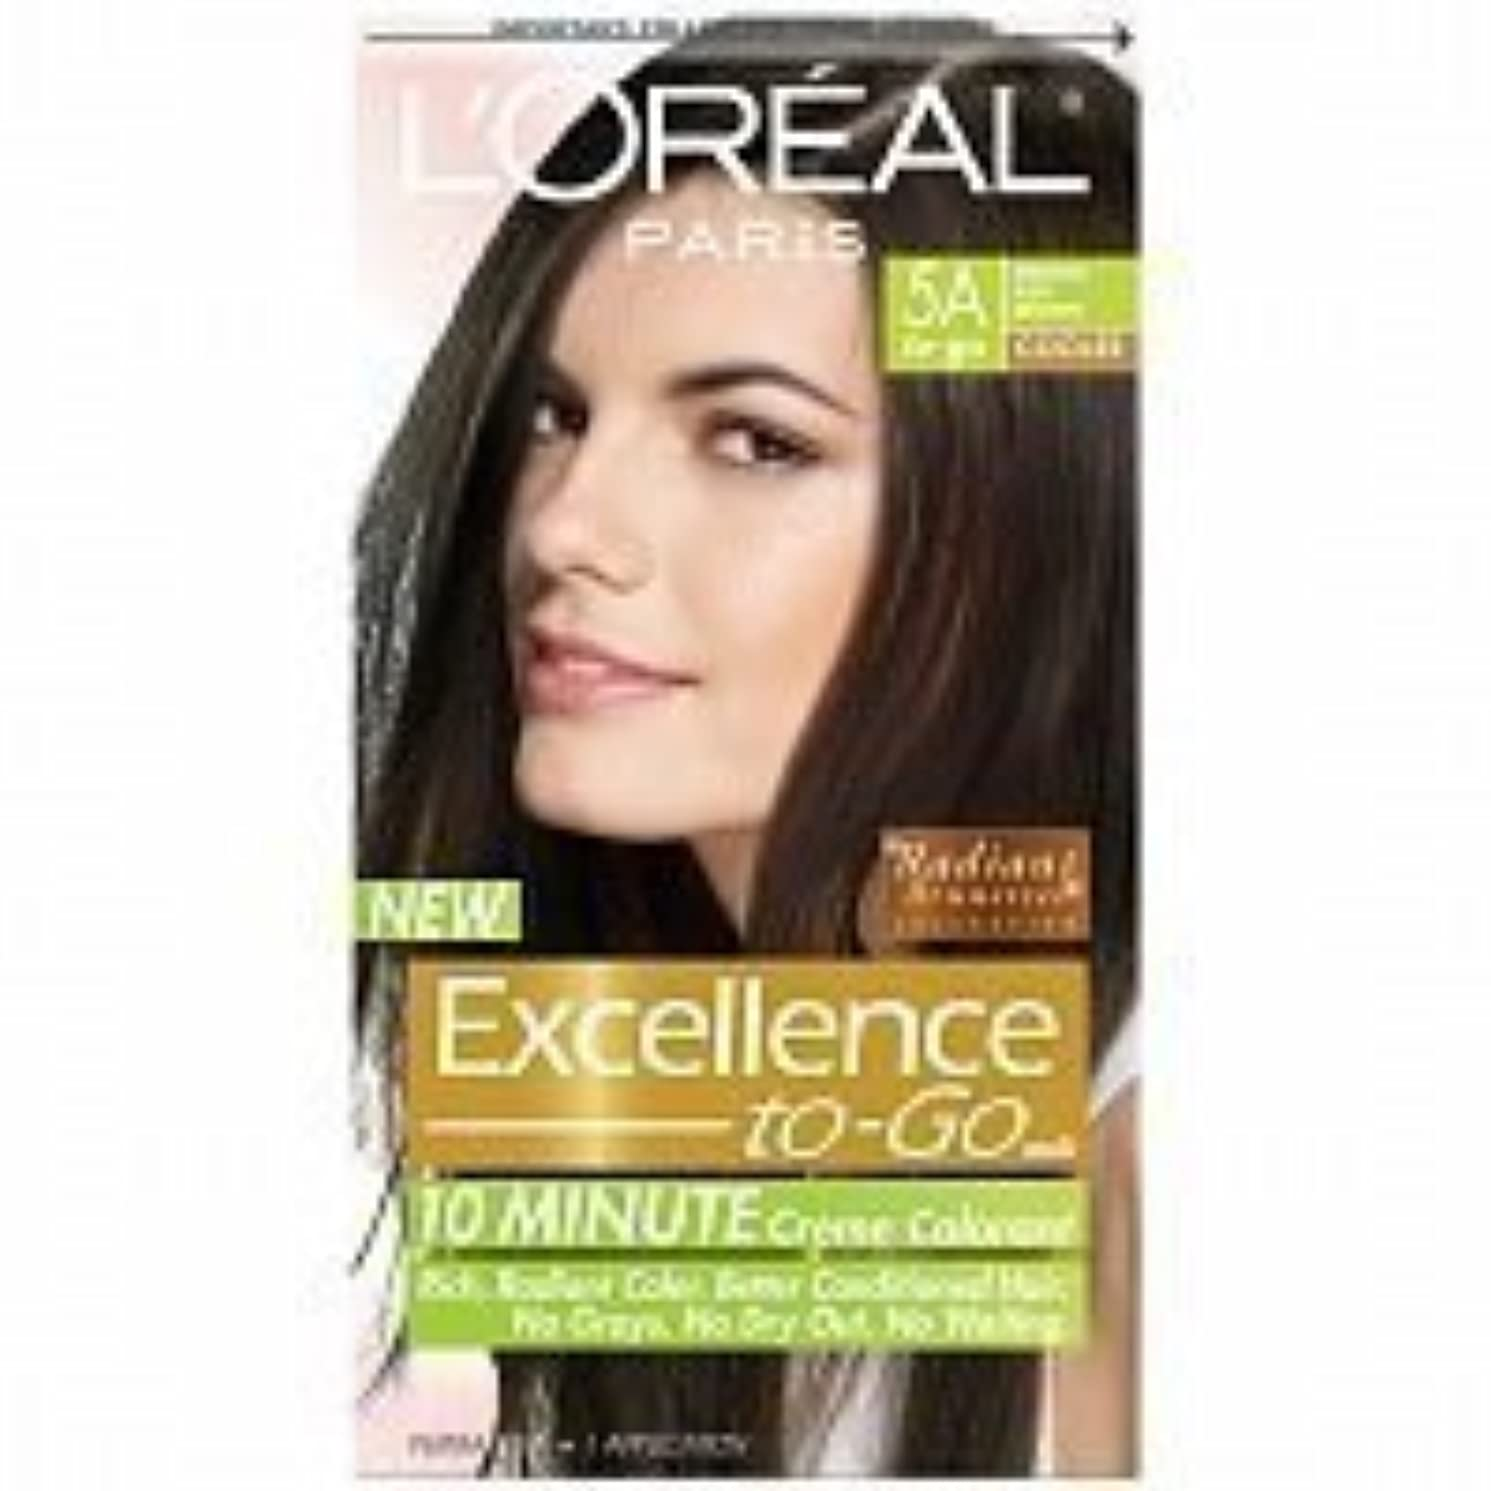 の間で炎上縮れたL'Oreal Paris Excellence To-Go 10-Minute Cr?N?Nme Coloring, Medium Ash Brown 5A by L'Oreal Paris Hair Color [並行輸入品]